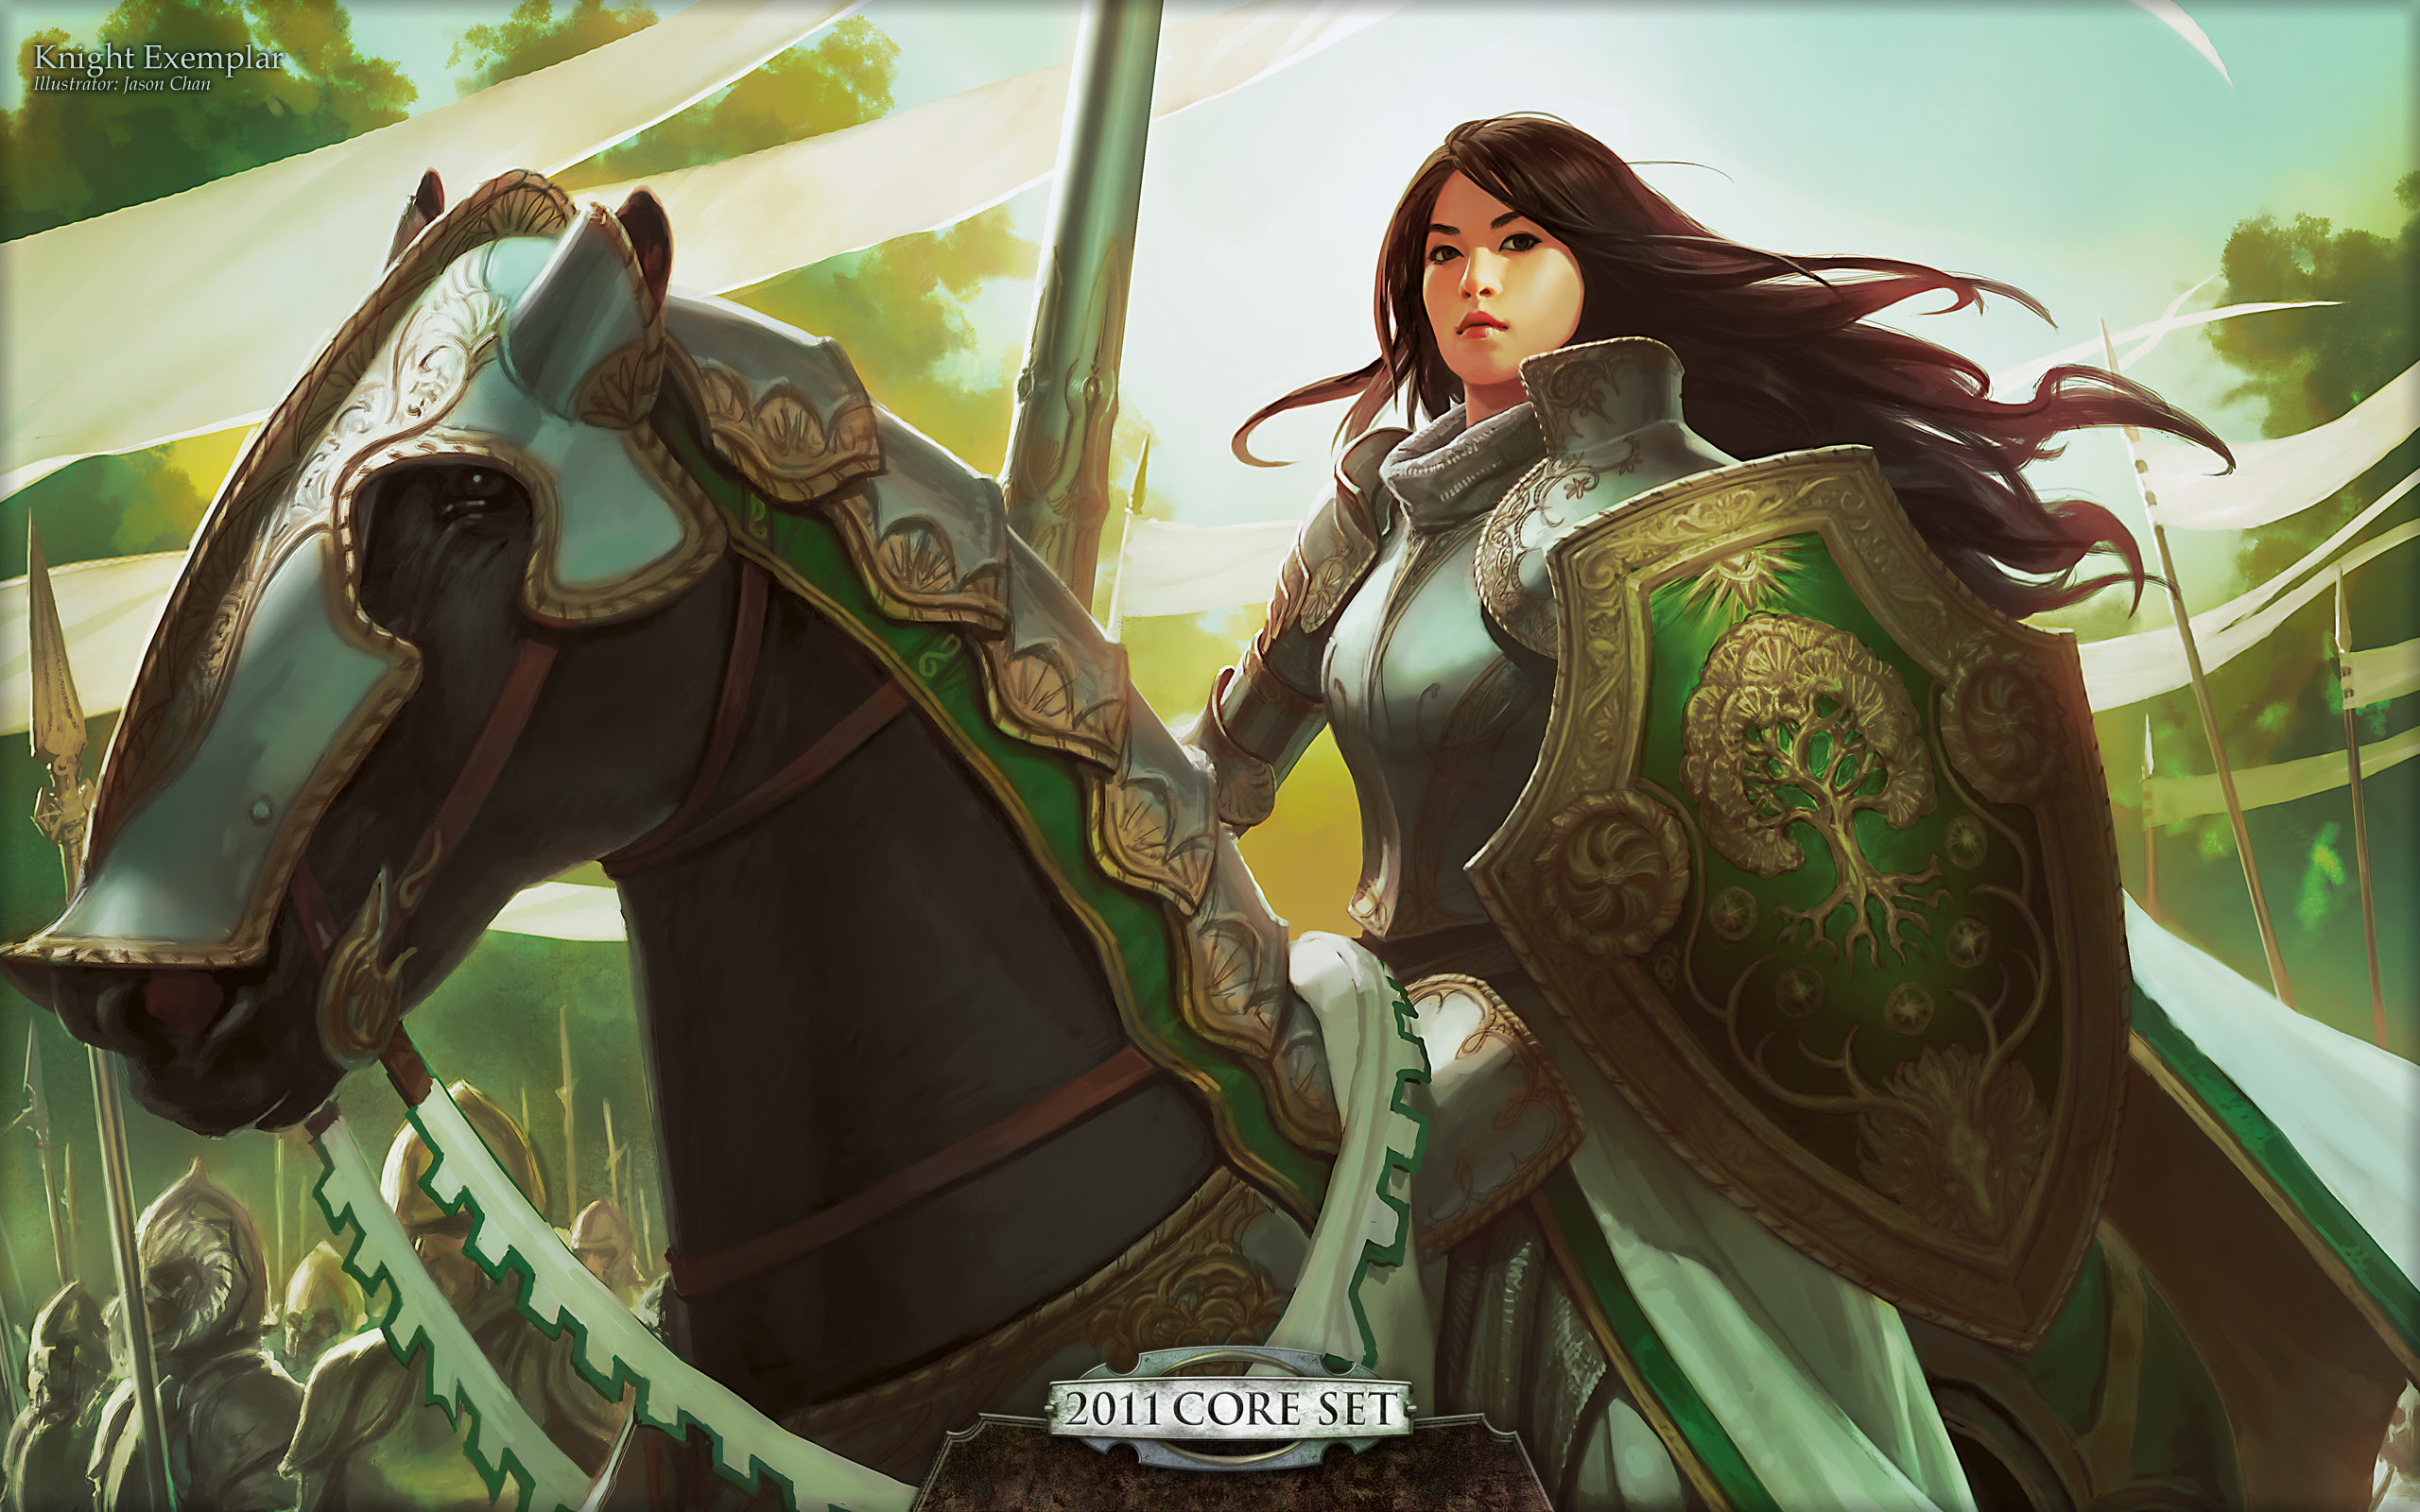 http://media.wizards.com/images/magic/daily/wallpapers/wp_knightexemplar_2560x1600.jpg